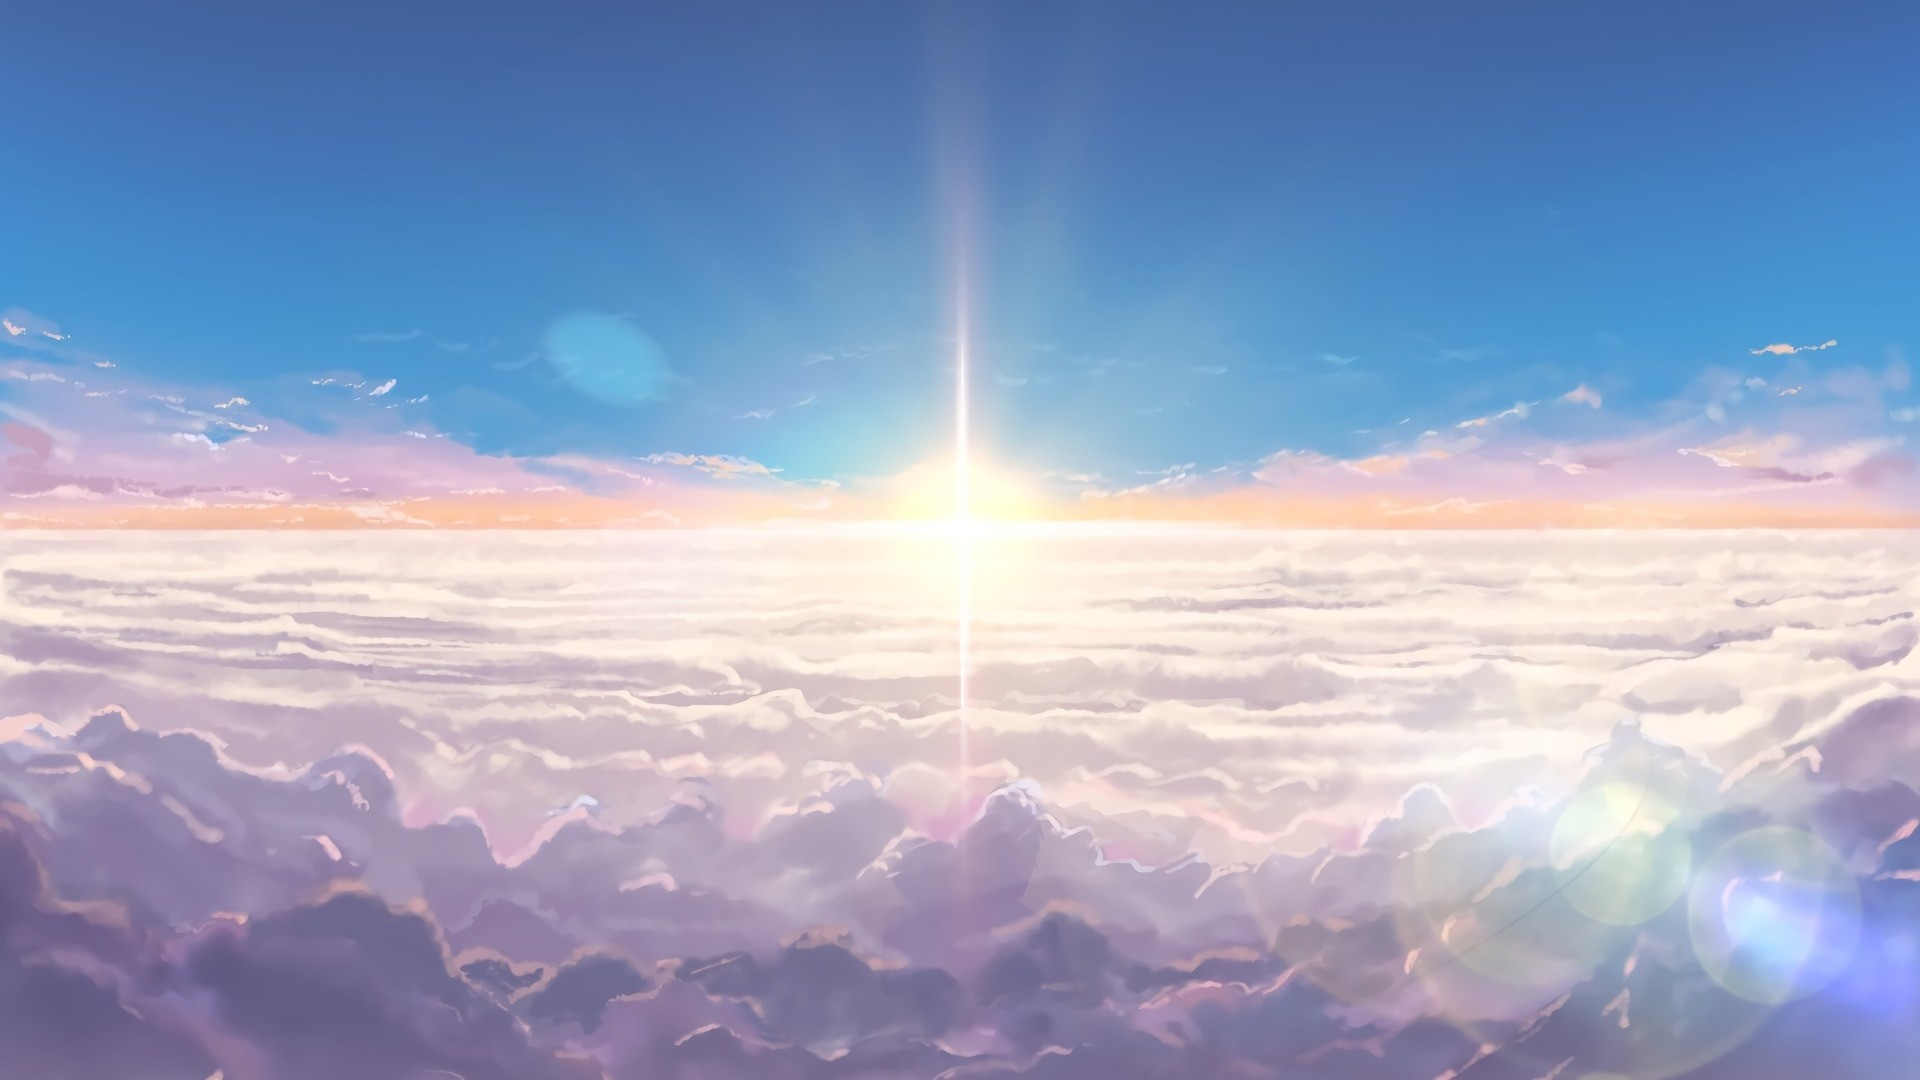 Anime Clouds computer wallpaper